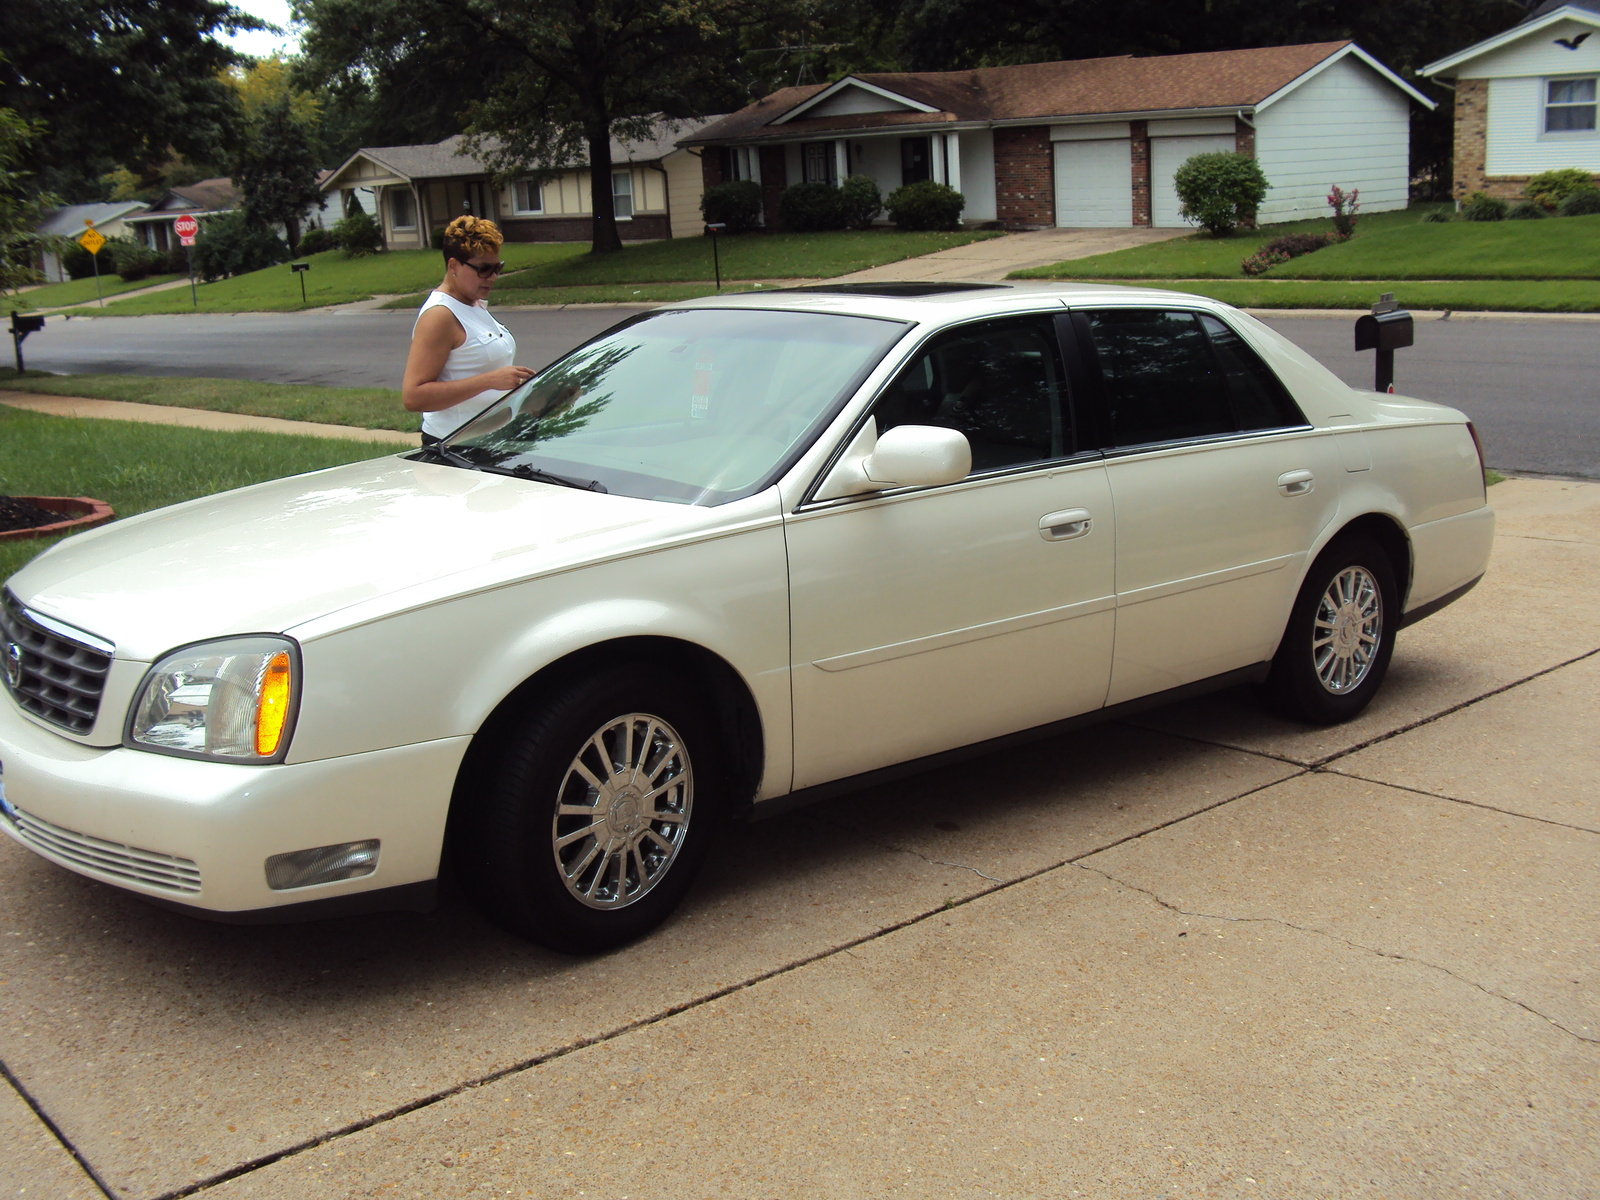 cadillac deville questions how much is a 2003 deville dhs worth cargurus how much is a 2003 deville dhs worth